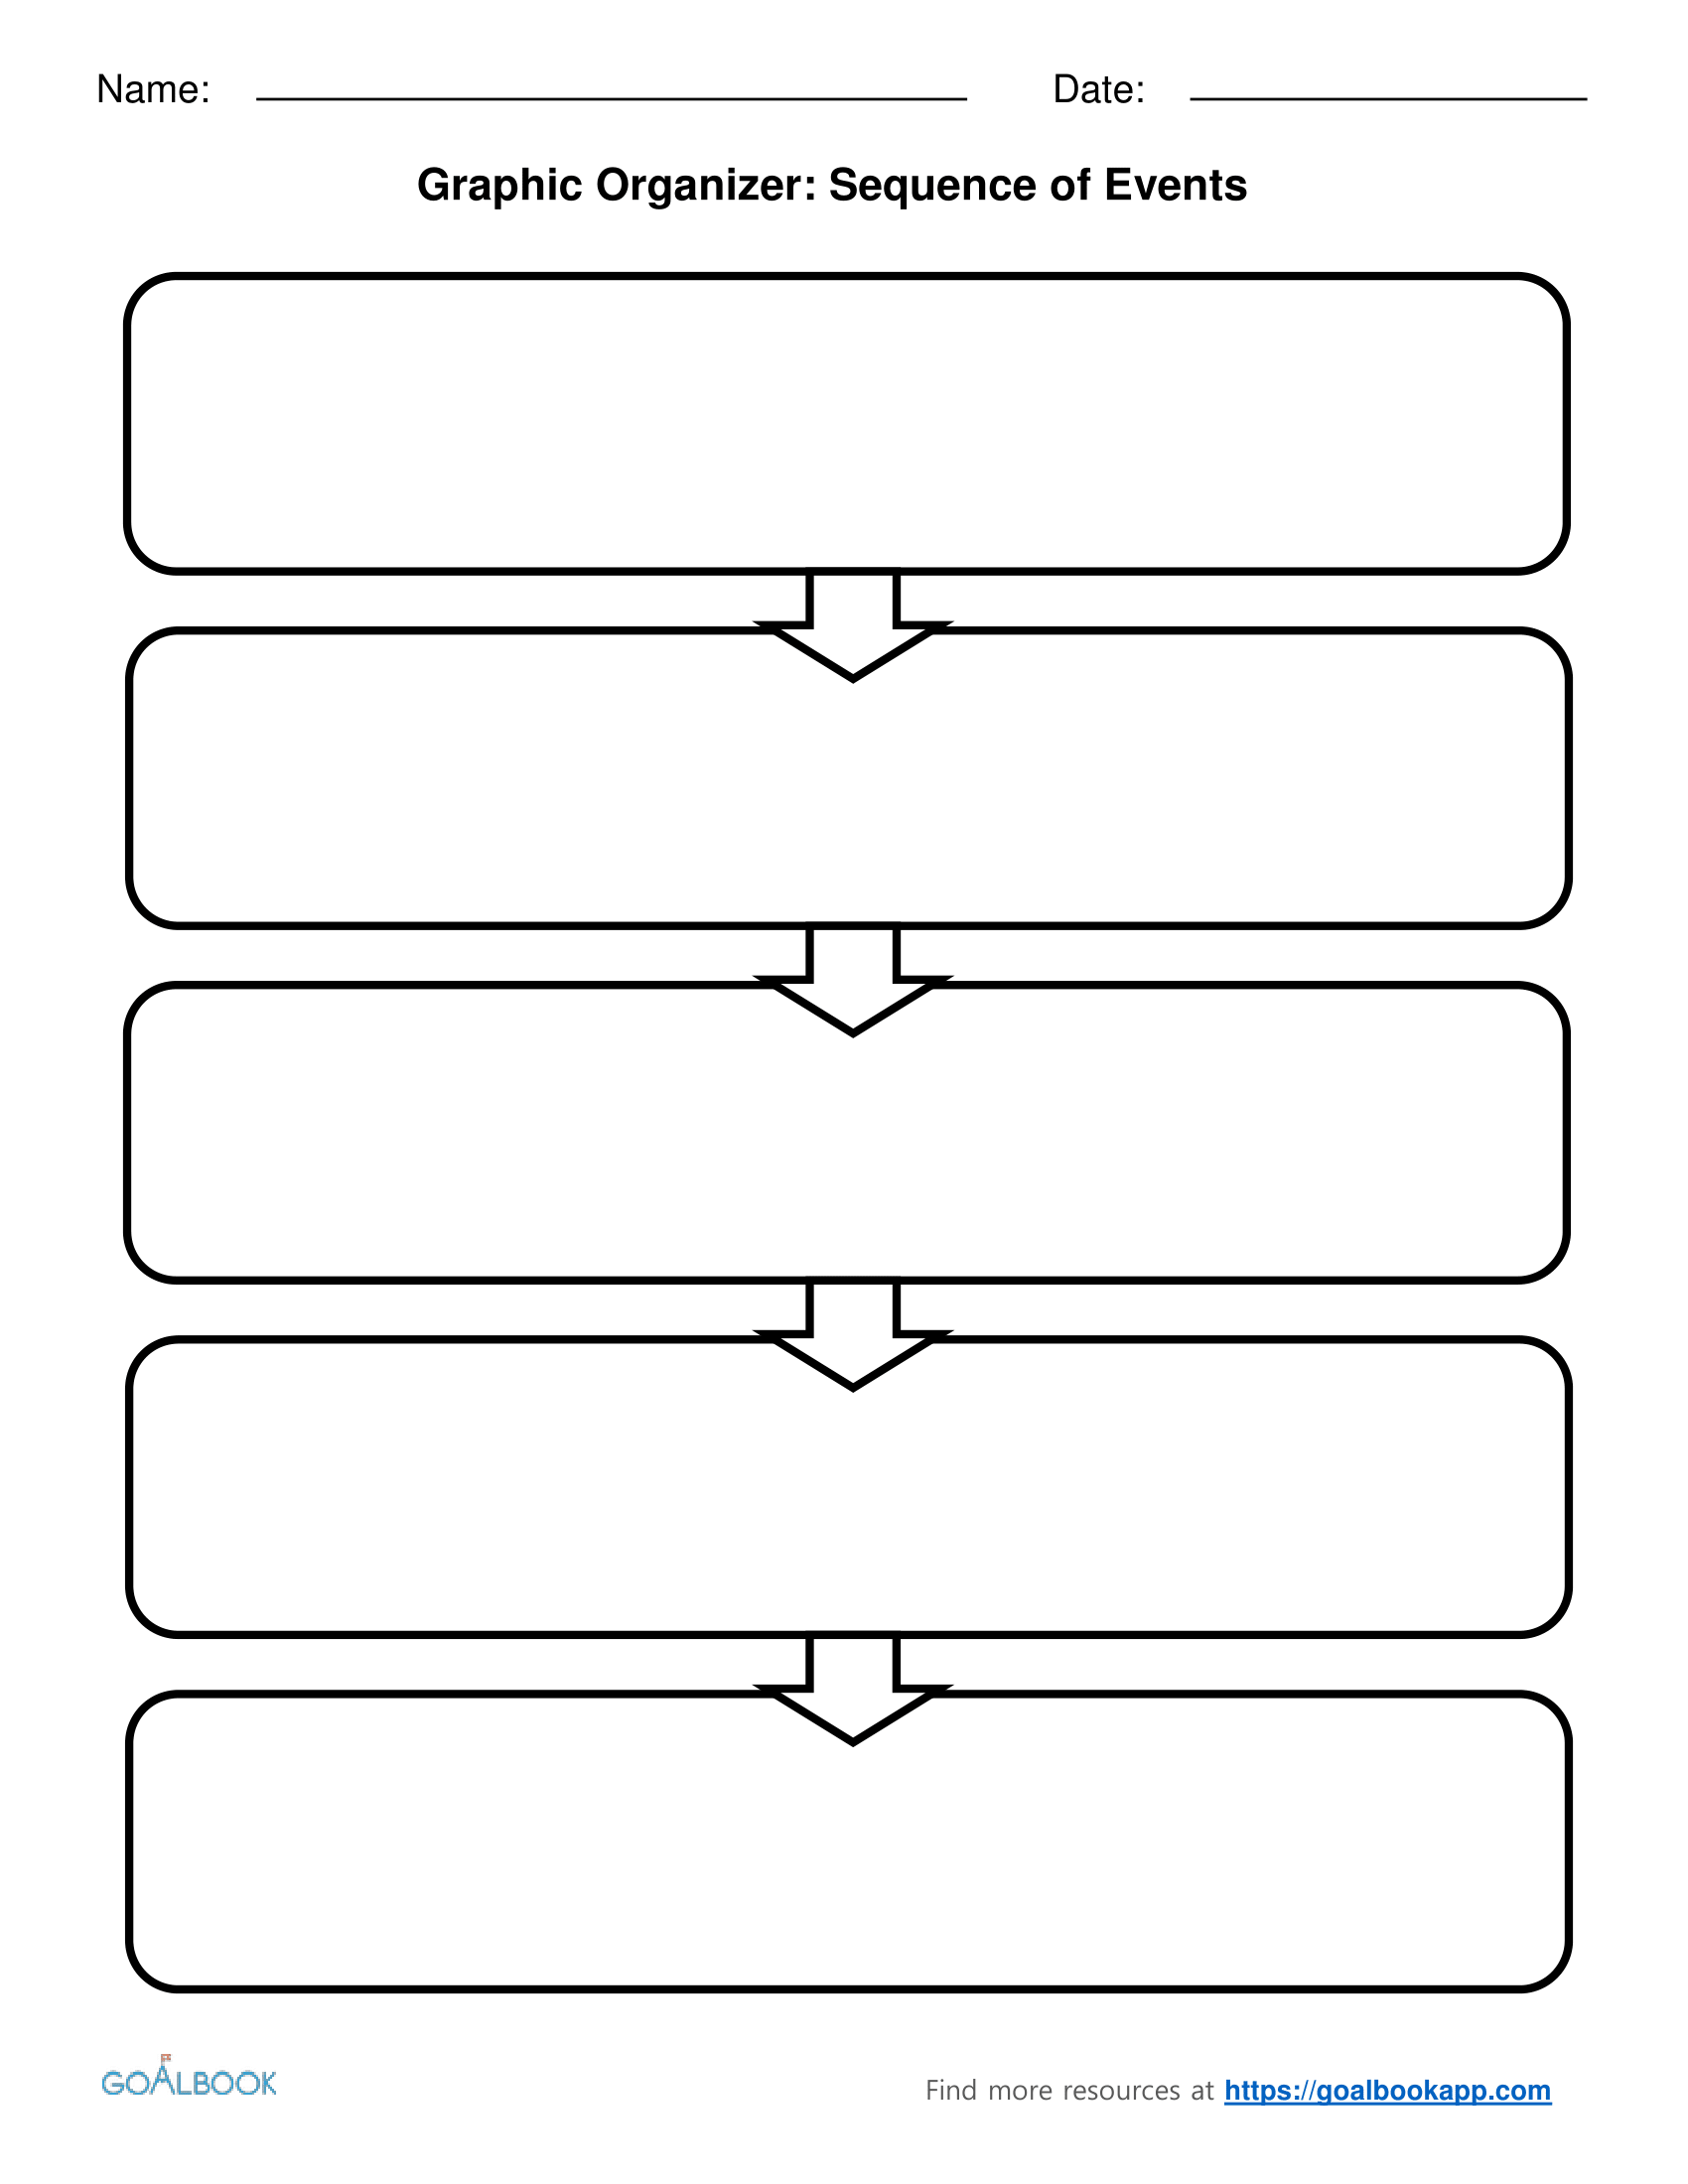 05_Chain_of_Events_Sequence_Organizer_Blank-1.png (1700×2200)   Graphic  organizer template [ 2200 x 1700 Pixel ]